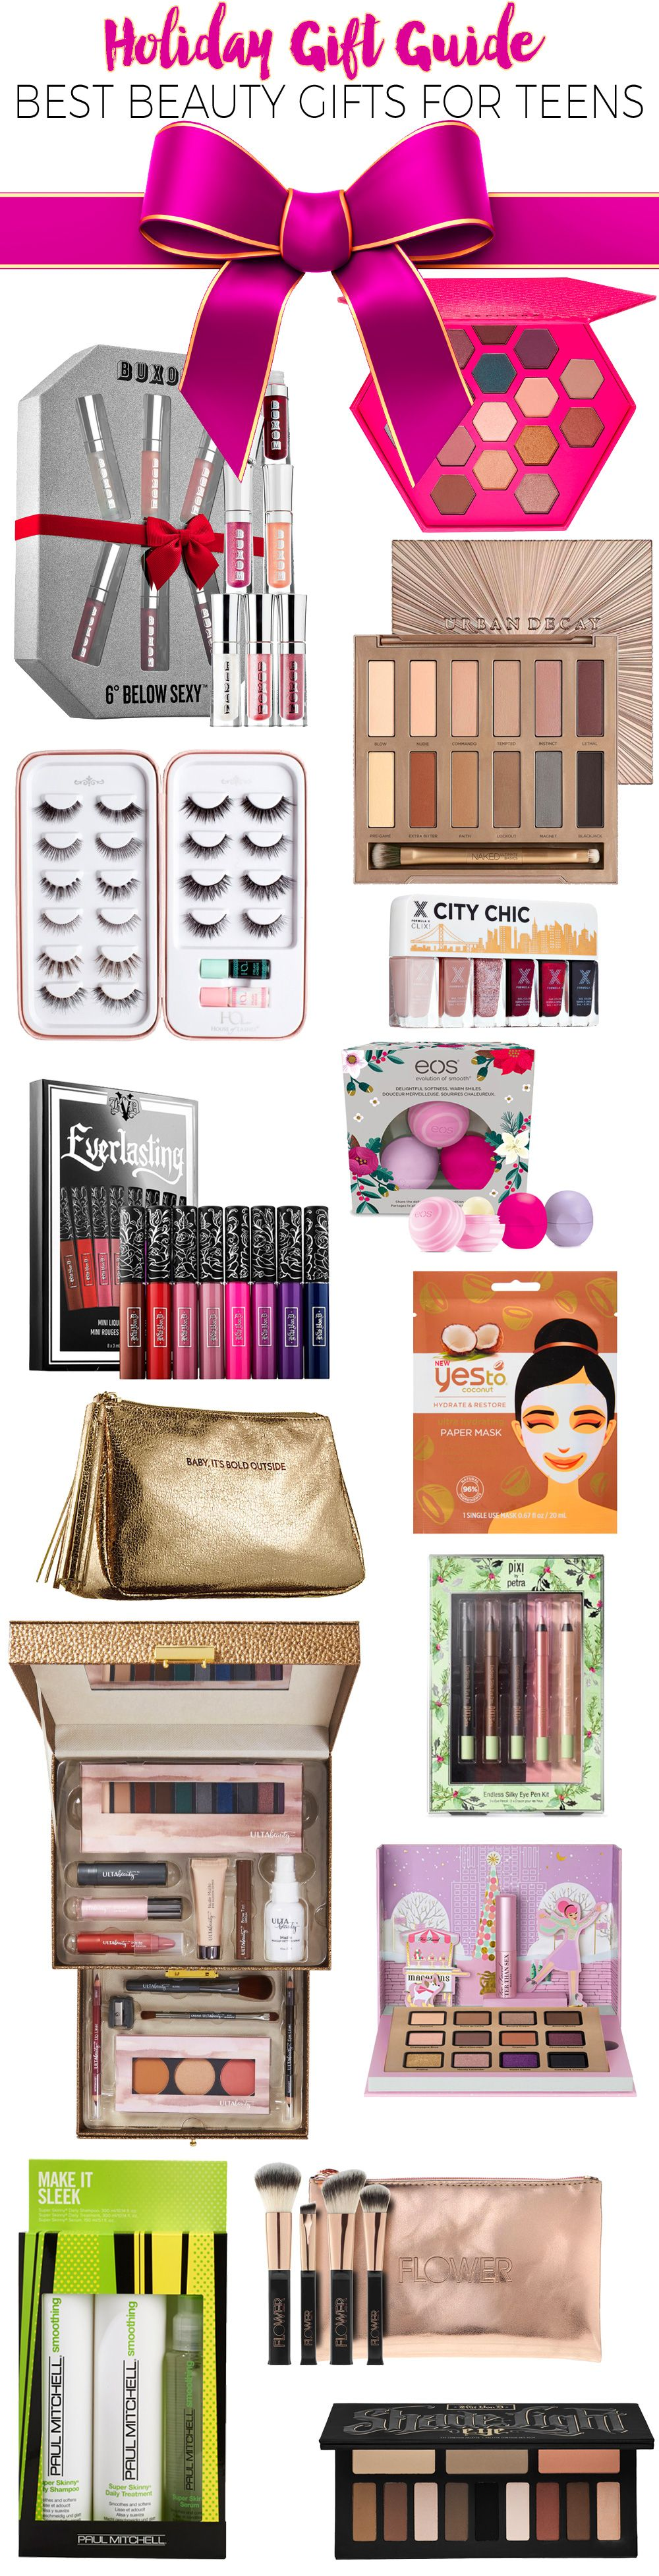 "Ultimatr Teen Girl s Christmas Wish List ✨"" by beautybyee"